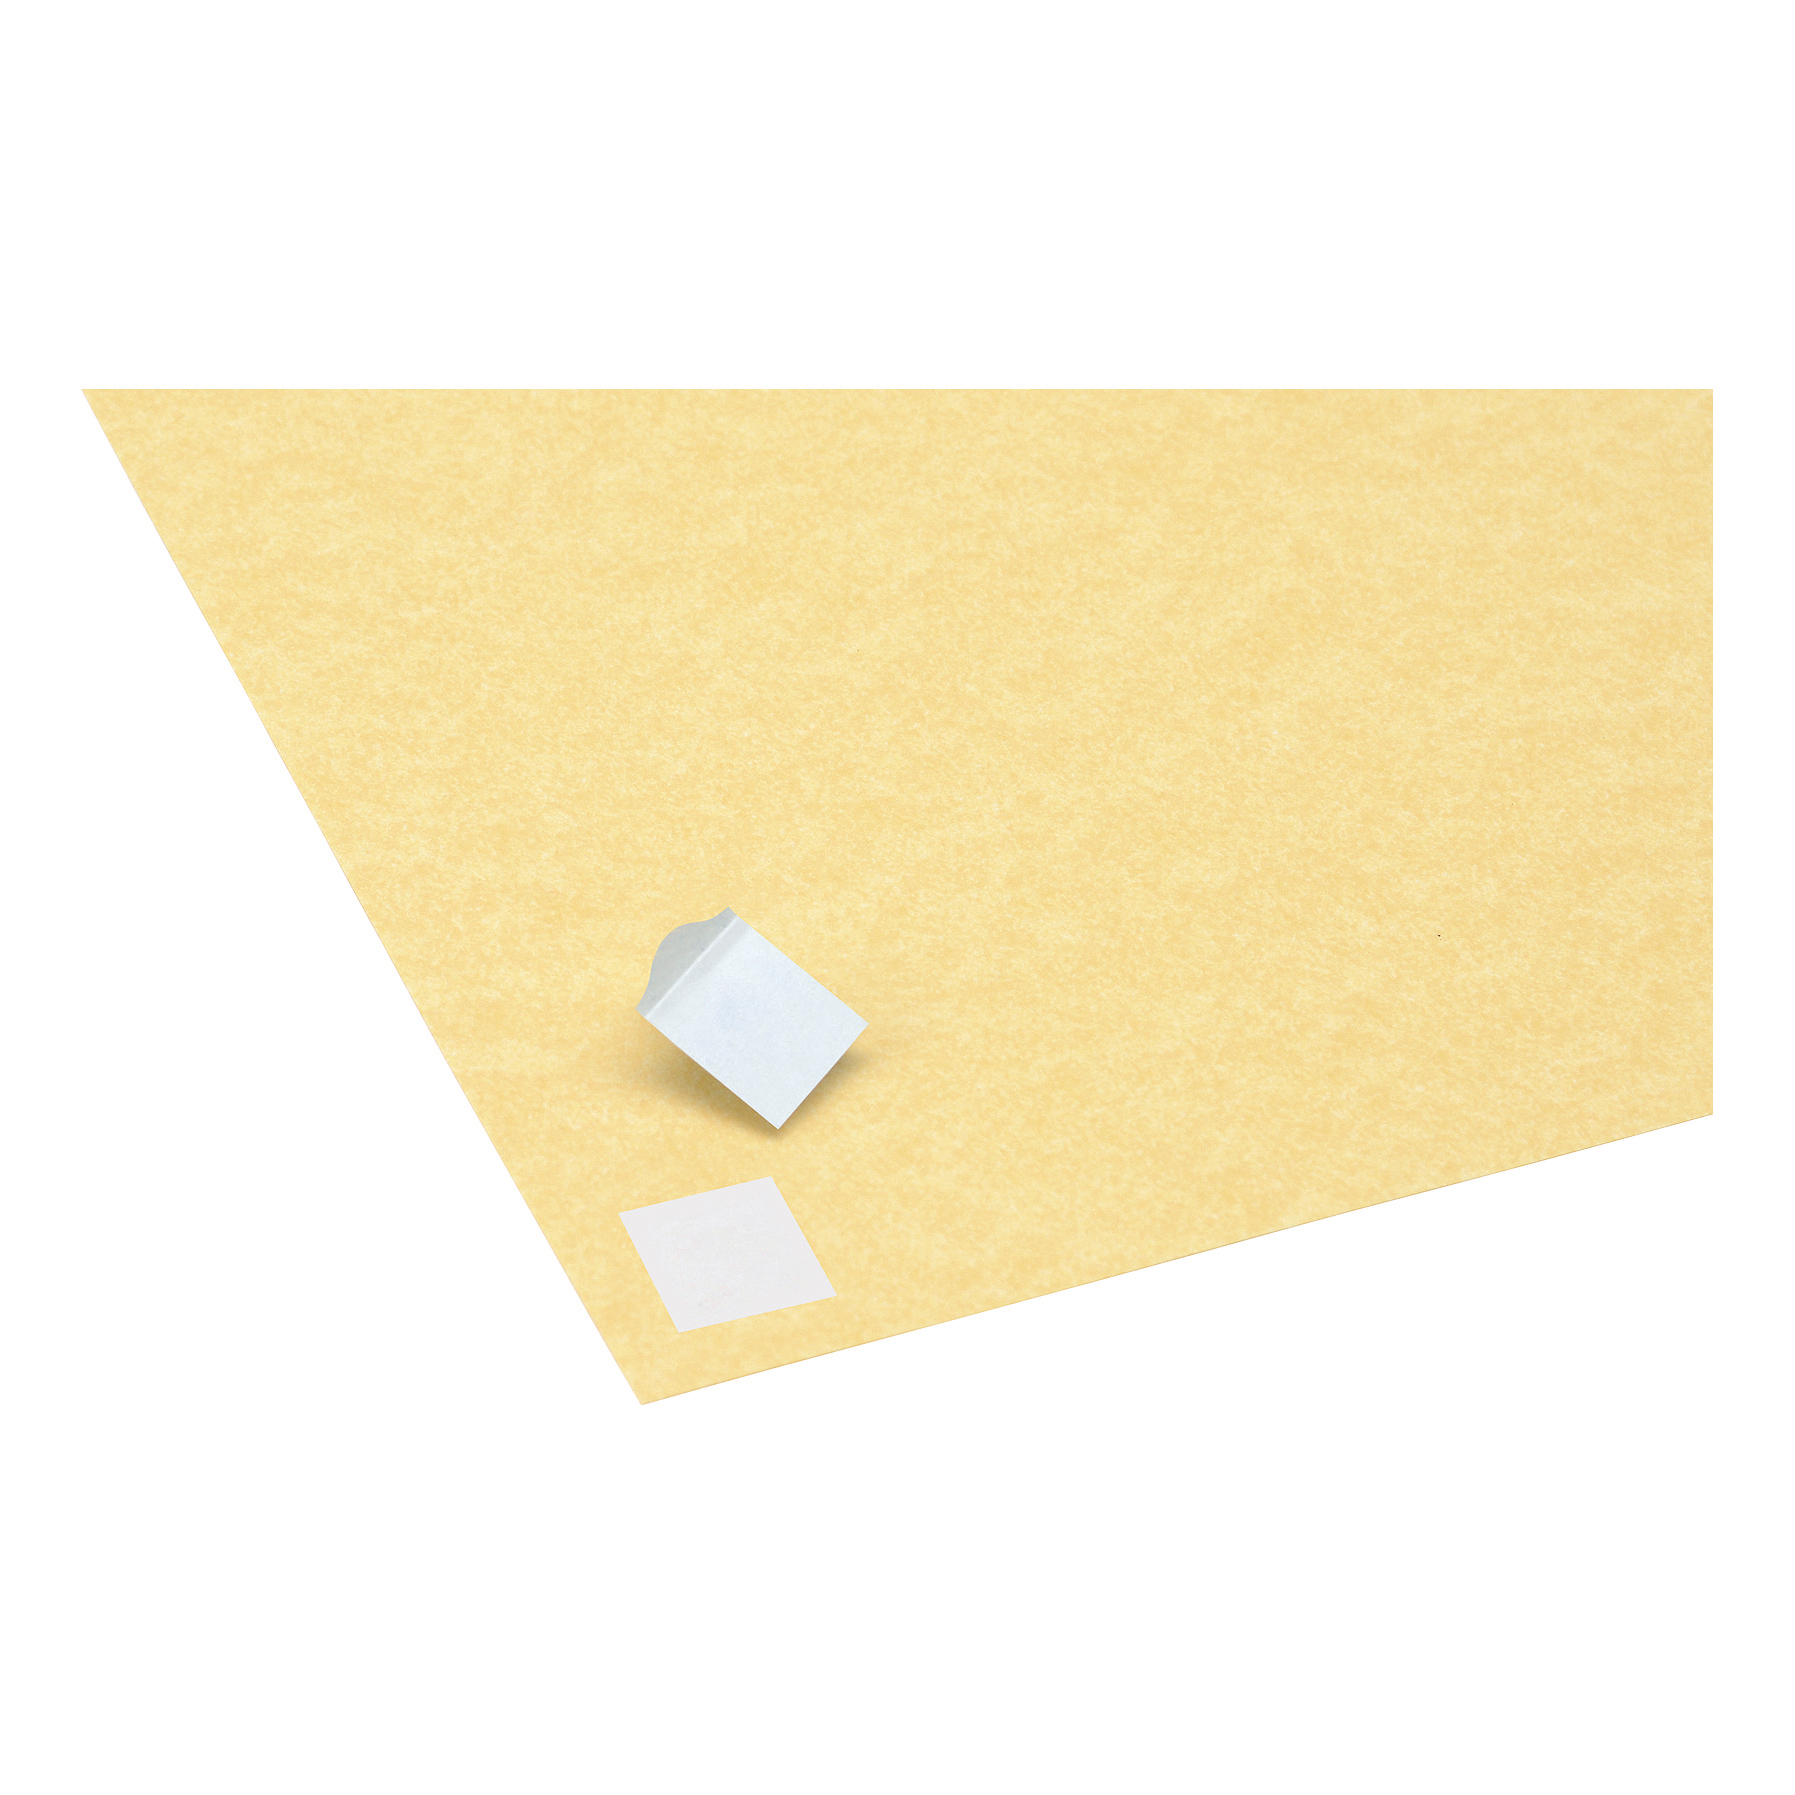 Photo Mounting 5 Star Office Photo Mounting Squares 17mm x 12mm Double Sided Adhesive White Pack 250